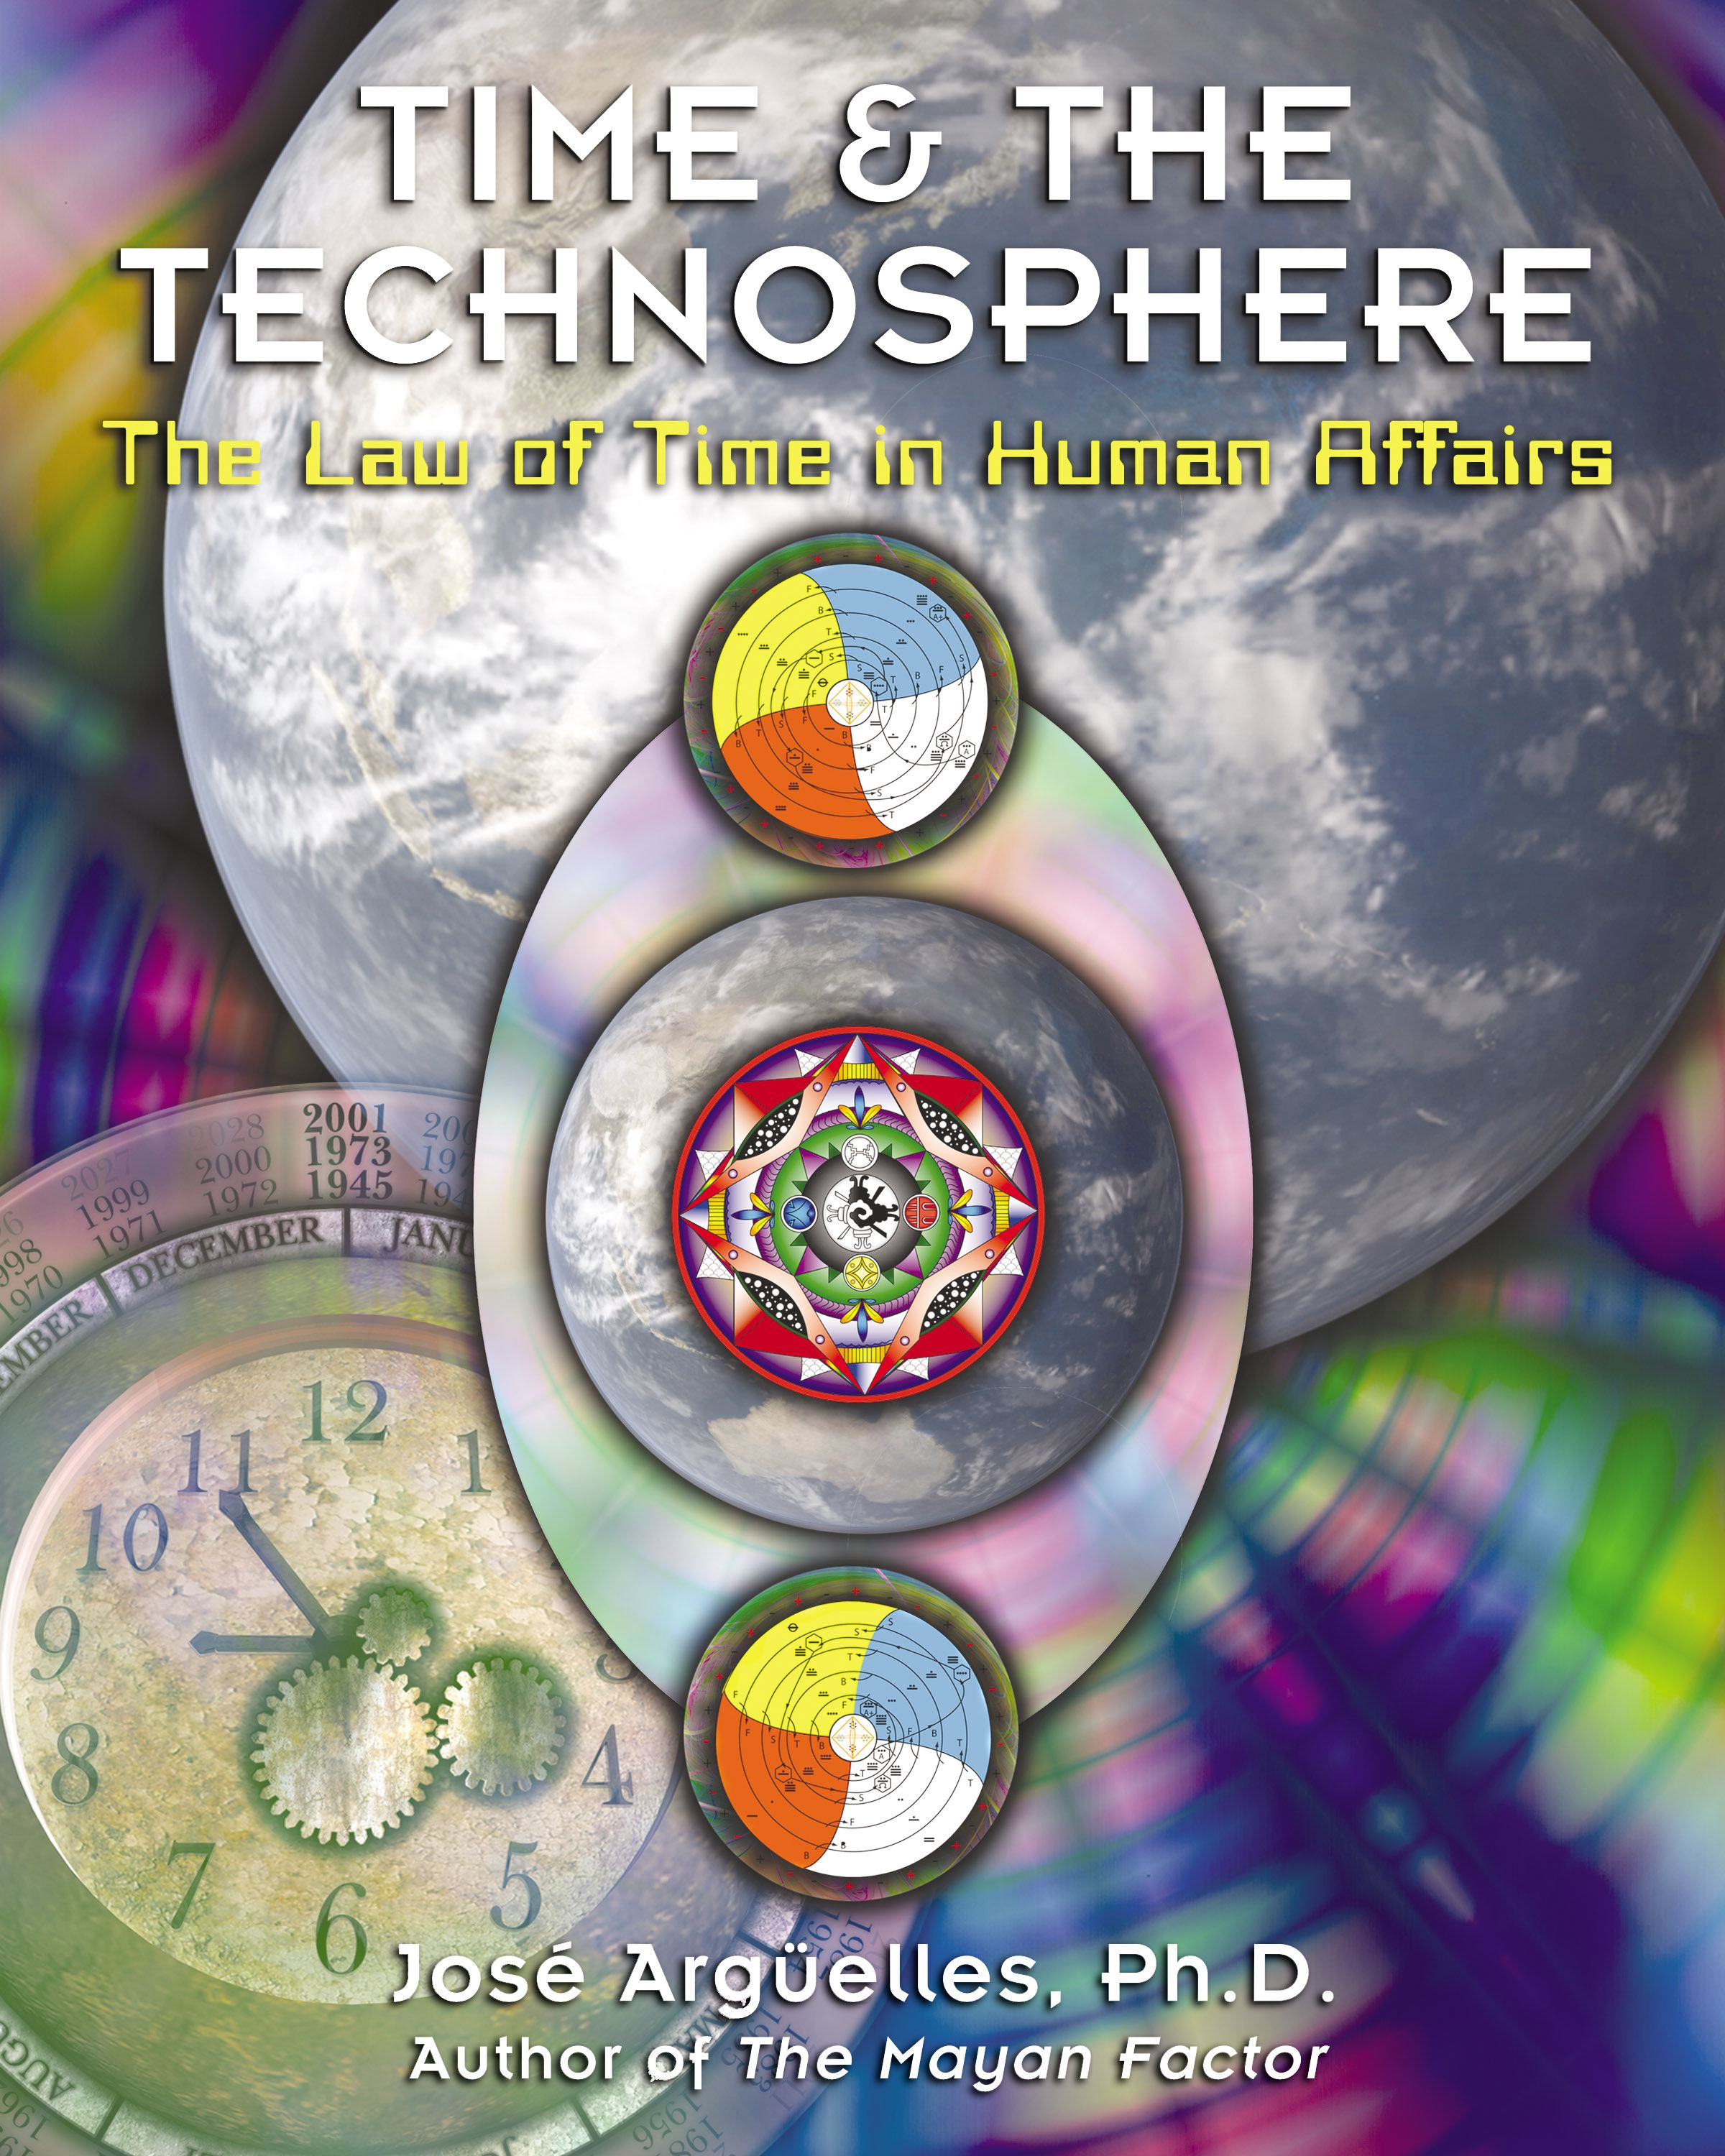 Time and the technosphere 9781879181991 hr